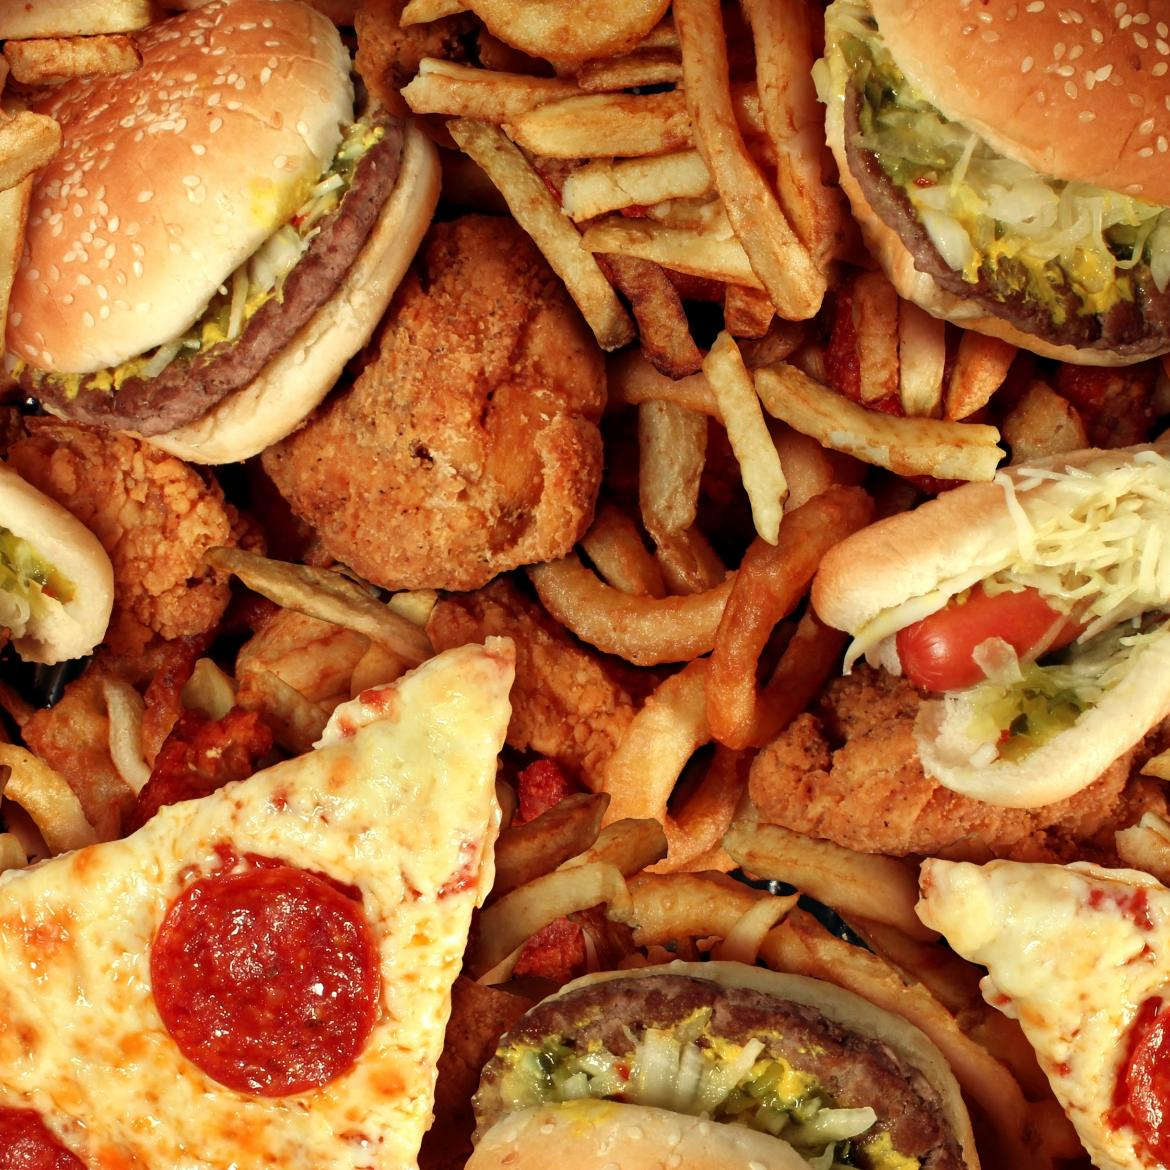 http://www.4newsmagazine.com.br/sites/default/files/bigstock-fast-food-45761026.jpg